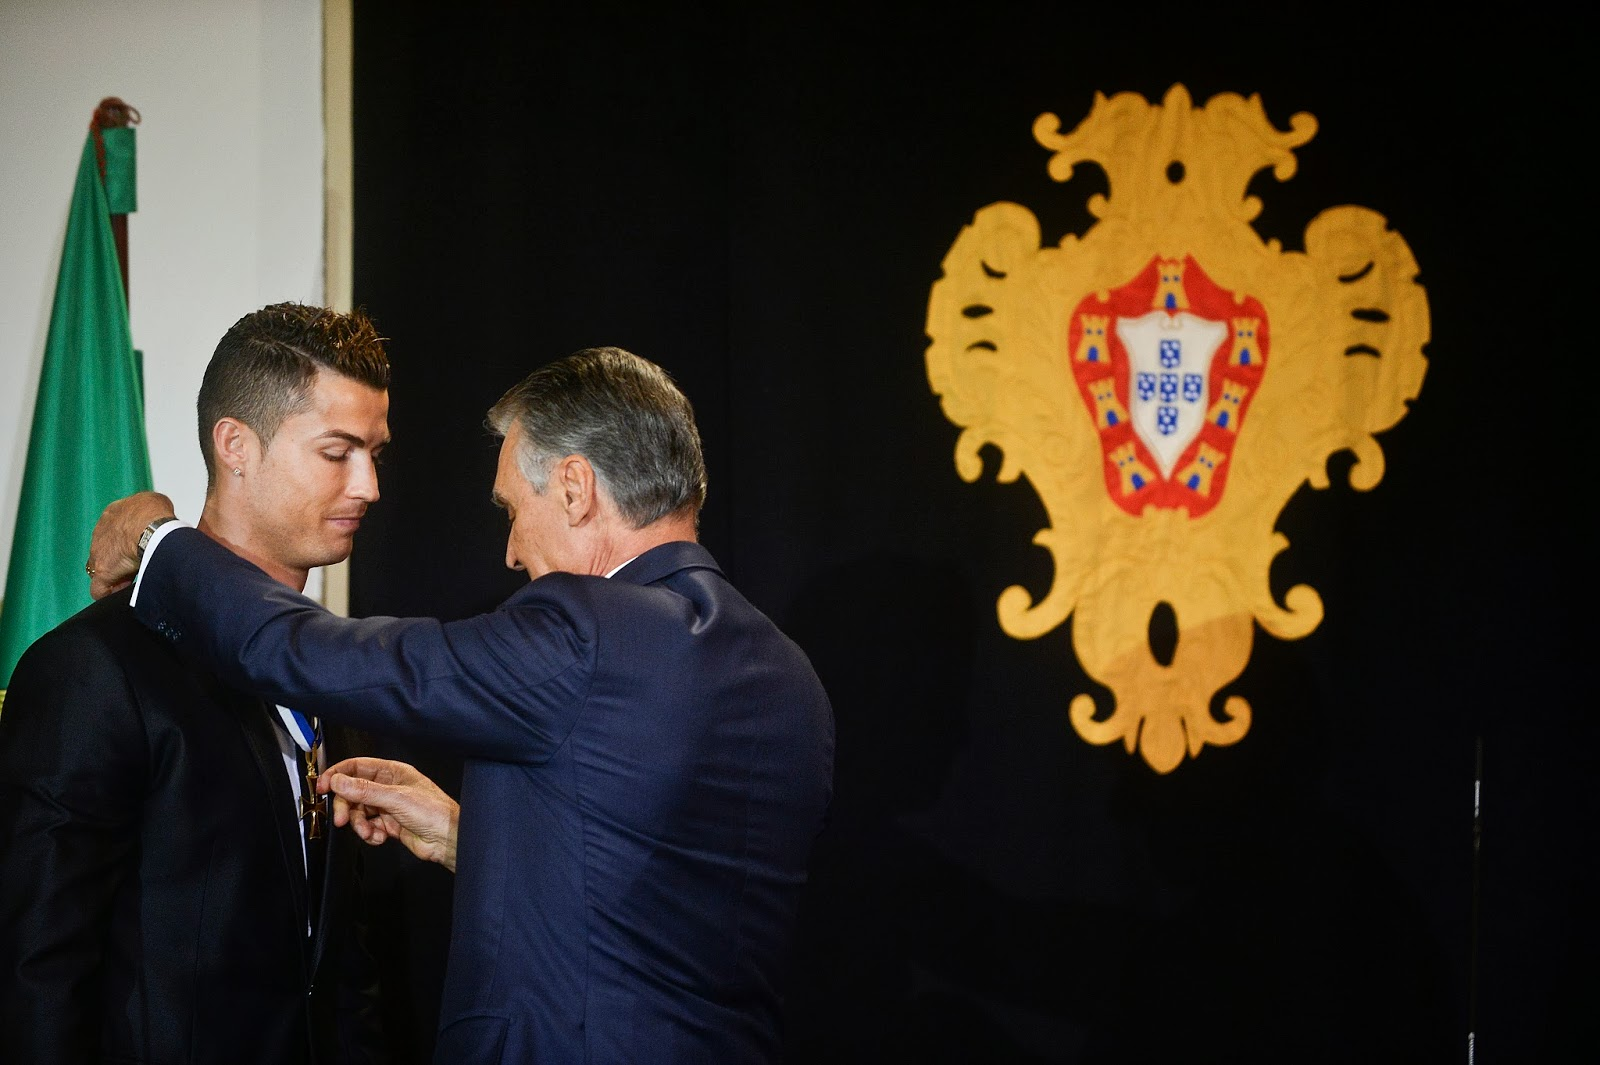 Anibal Cavaco Silva, Award, Belem Palace, Country, Cristiano Ronaldo, Football, Footballer, Grand Officer, Honour, Politics, Portugal, President, Prince Henry, Sports,